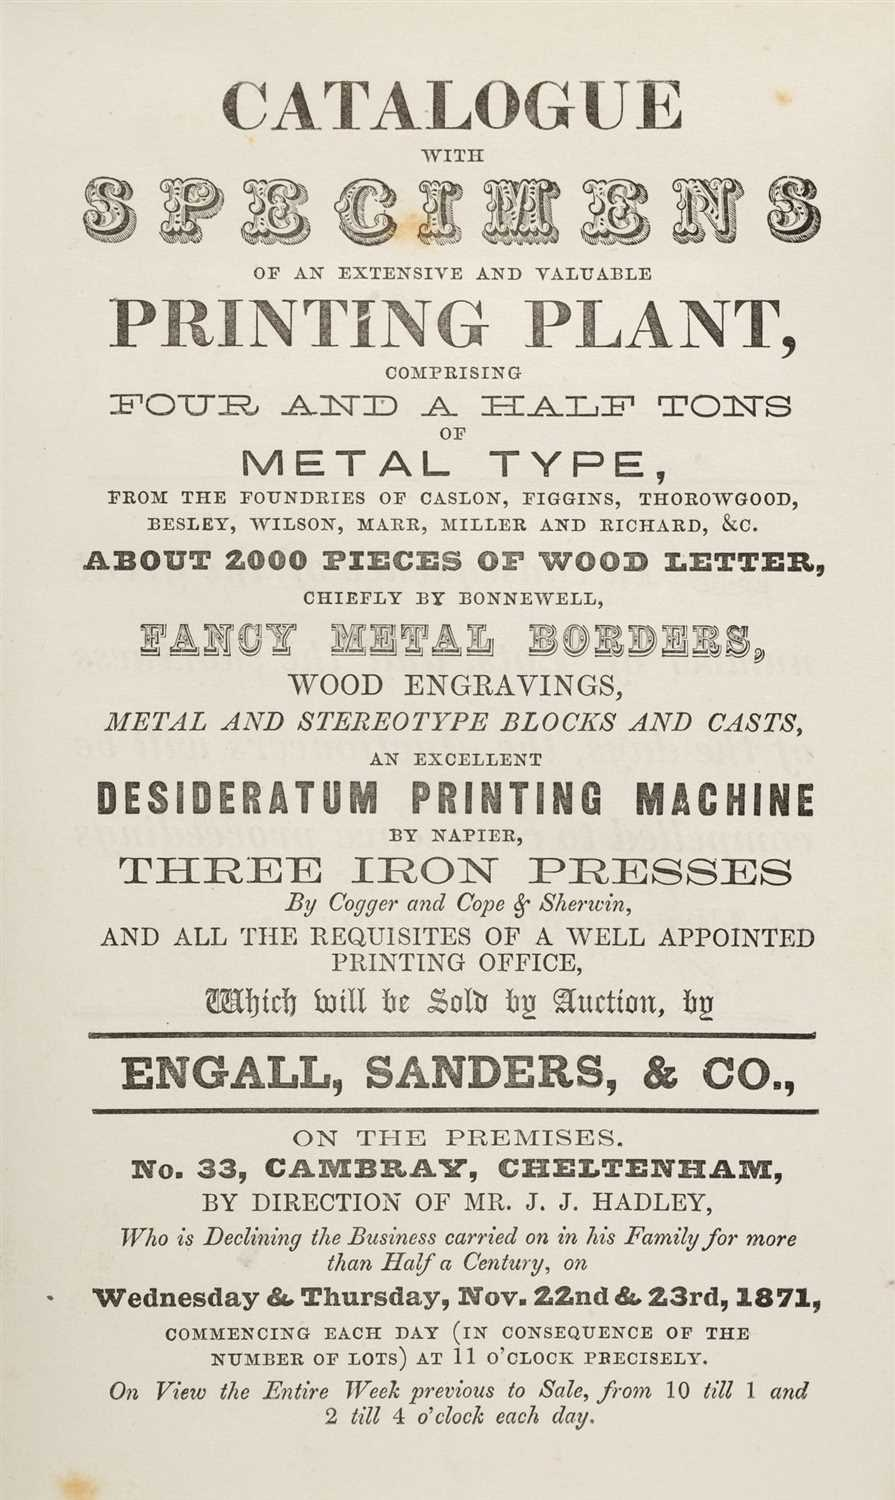 Lot 385 - Type Auction. Catalogue with Specimens of an Extensive and Valuable Printing Plant, 1871